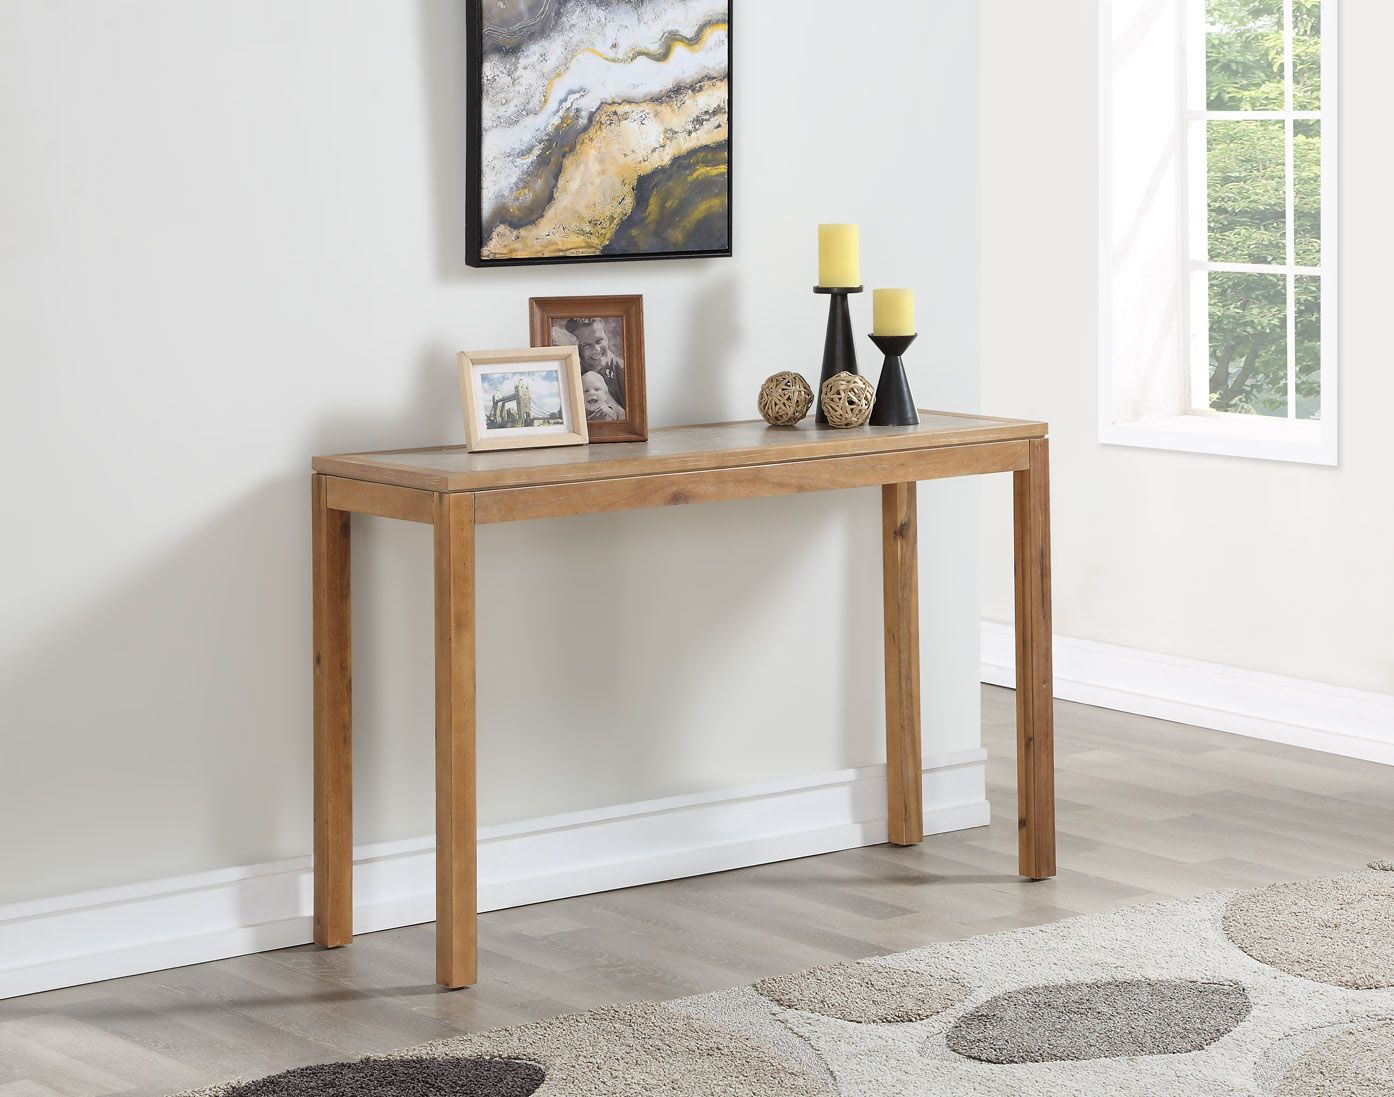 Mainstays Glenmore Faux Concrete Top With Grey Wash Wood Finish Console Table Walmart Com In 2020 Furniture Living Room Furniture Wood Finish